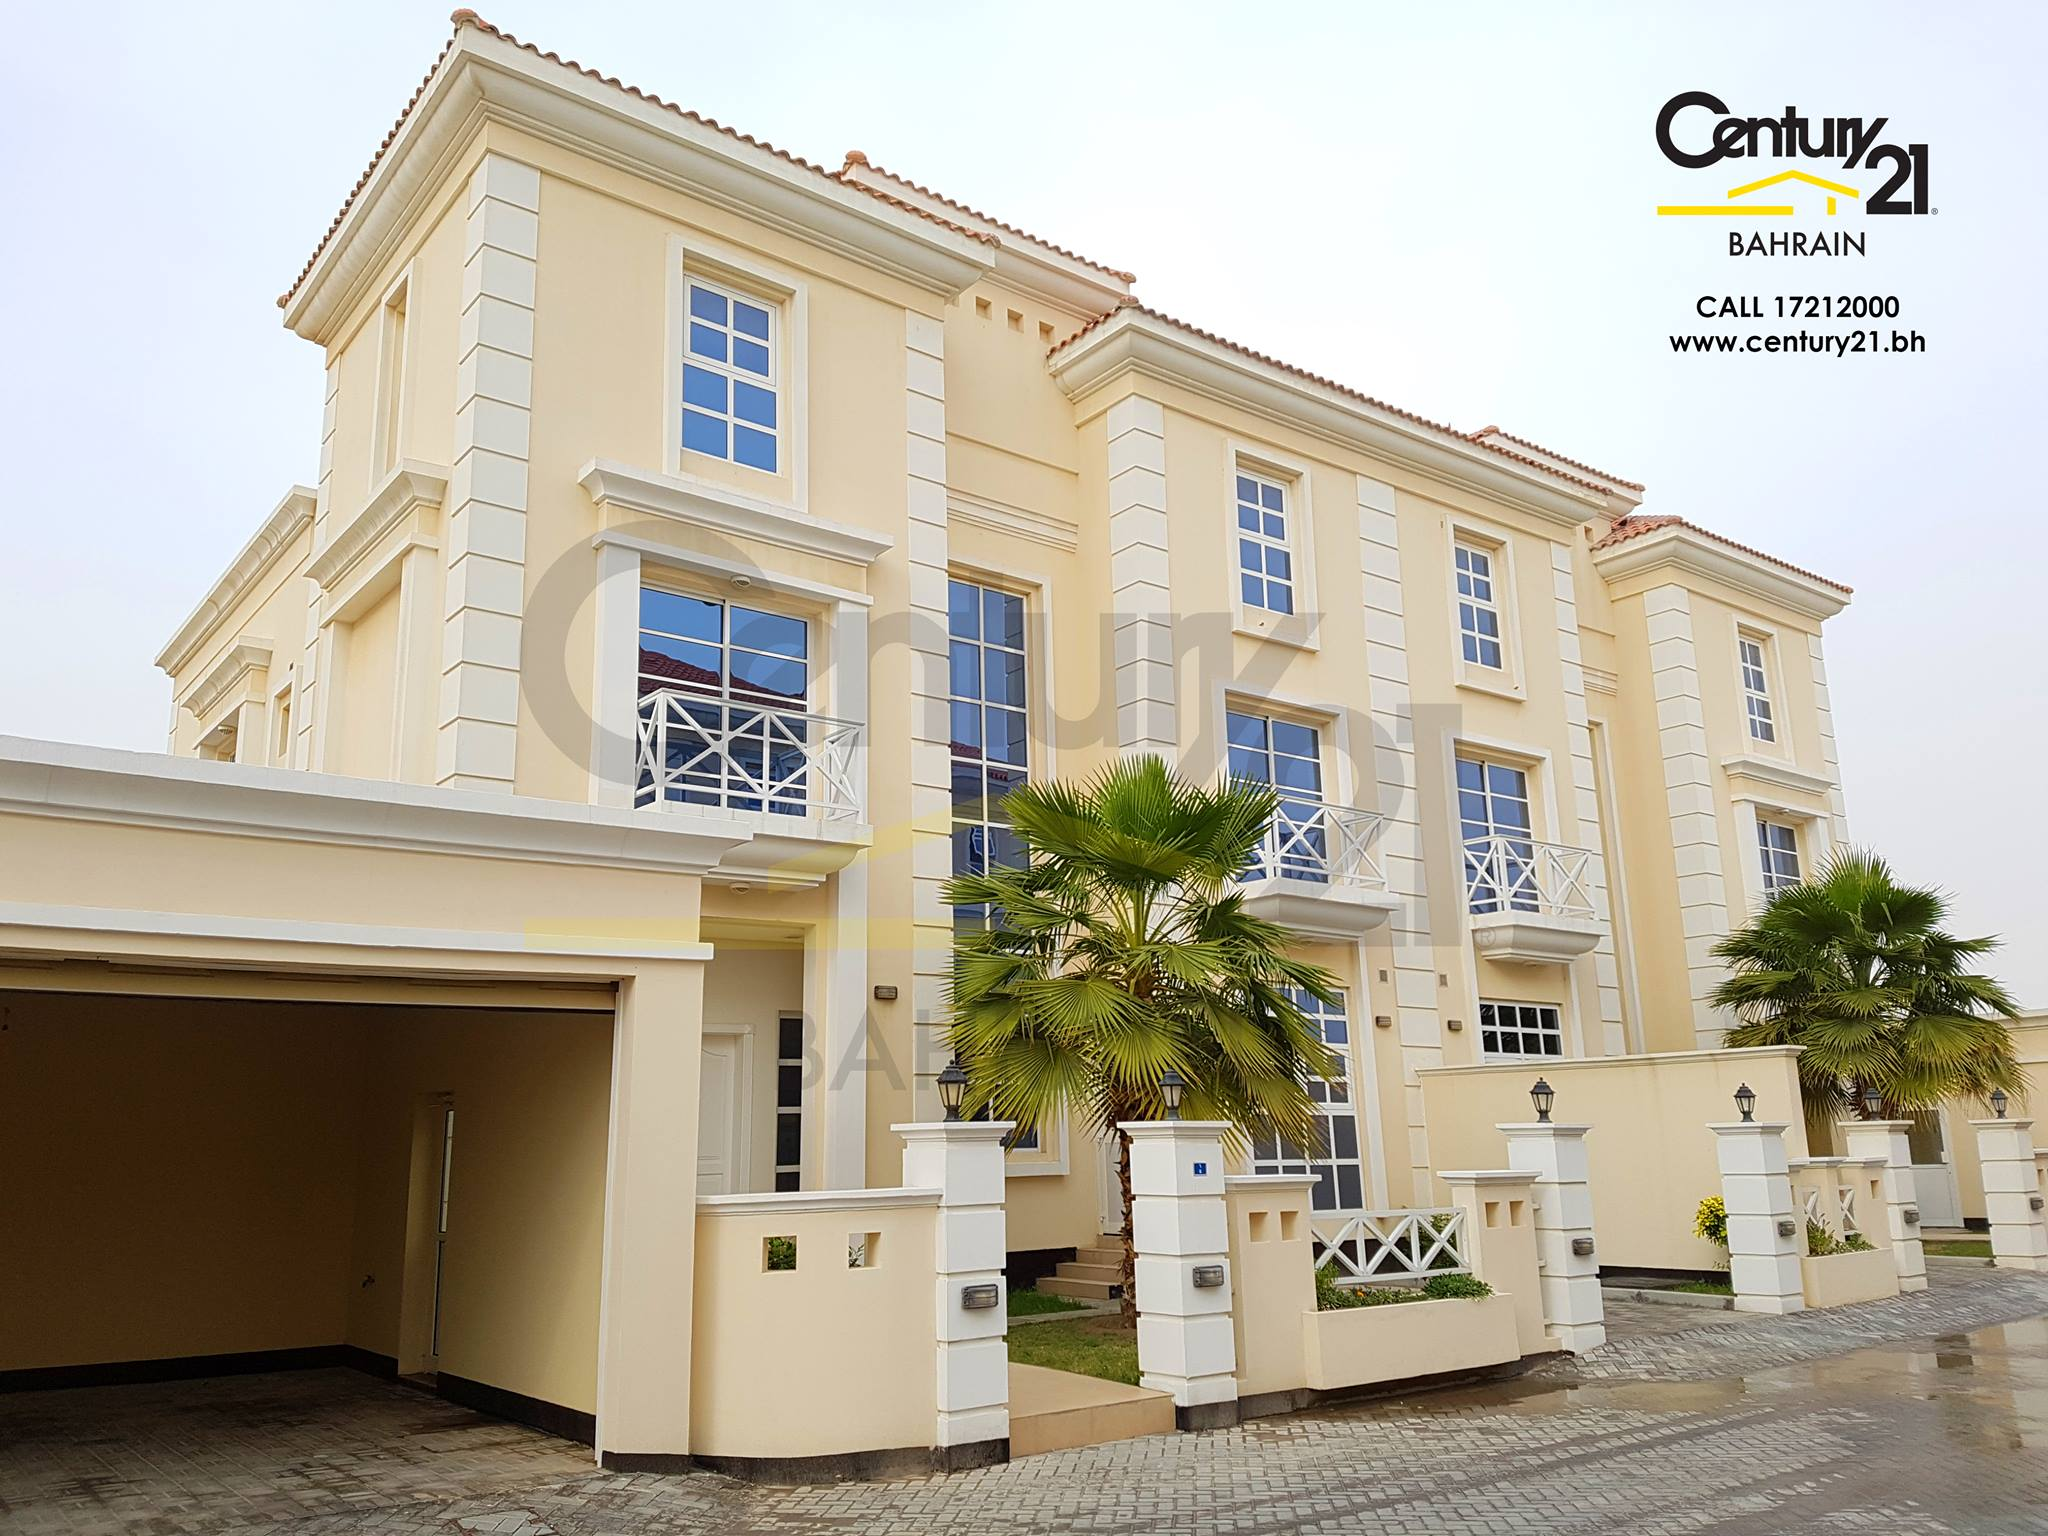 SEMI FURNISHED 4 BEDROOM COMPOUND VILLAS FOR BD 1200 EXCLUSIVE OR BD 1300 INCLUSIVE VR694